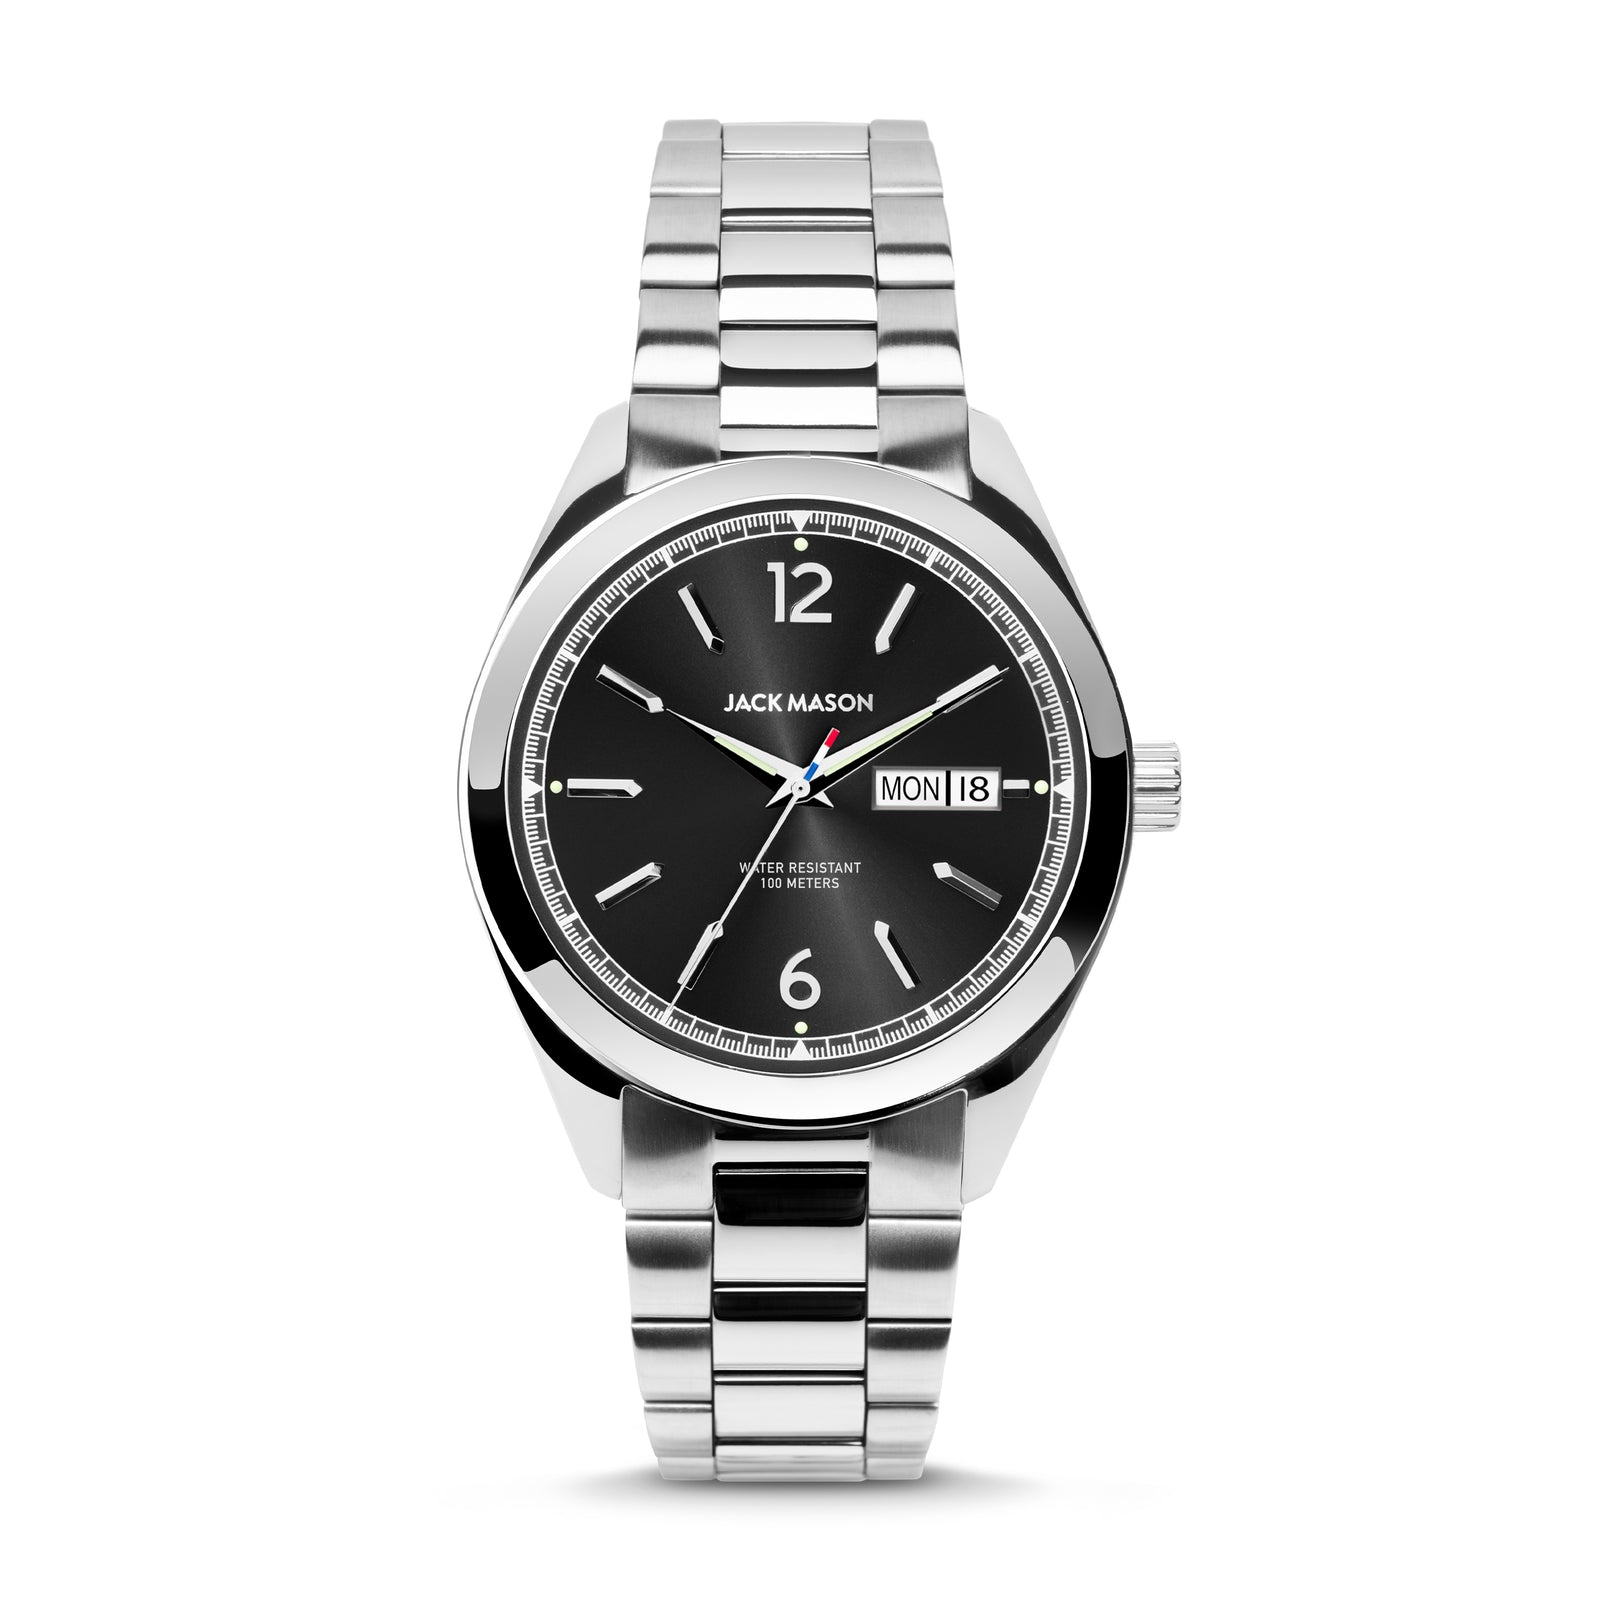 A stainless steel and black dial version of the Canton Day-Date Watch by Jack Mason